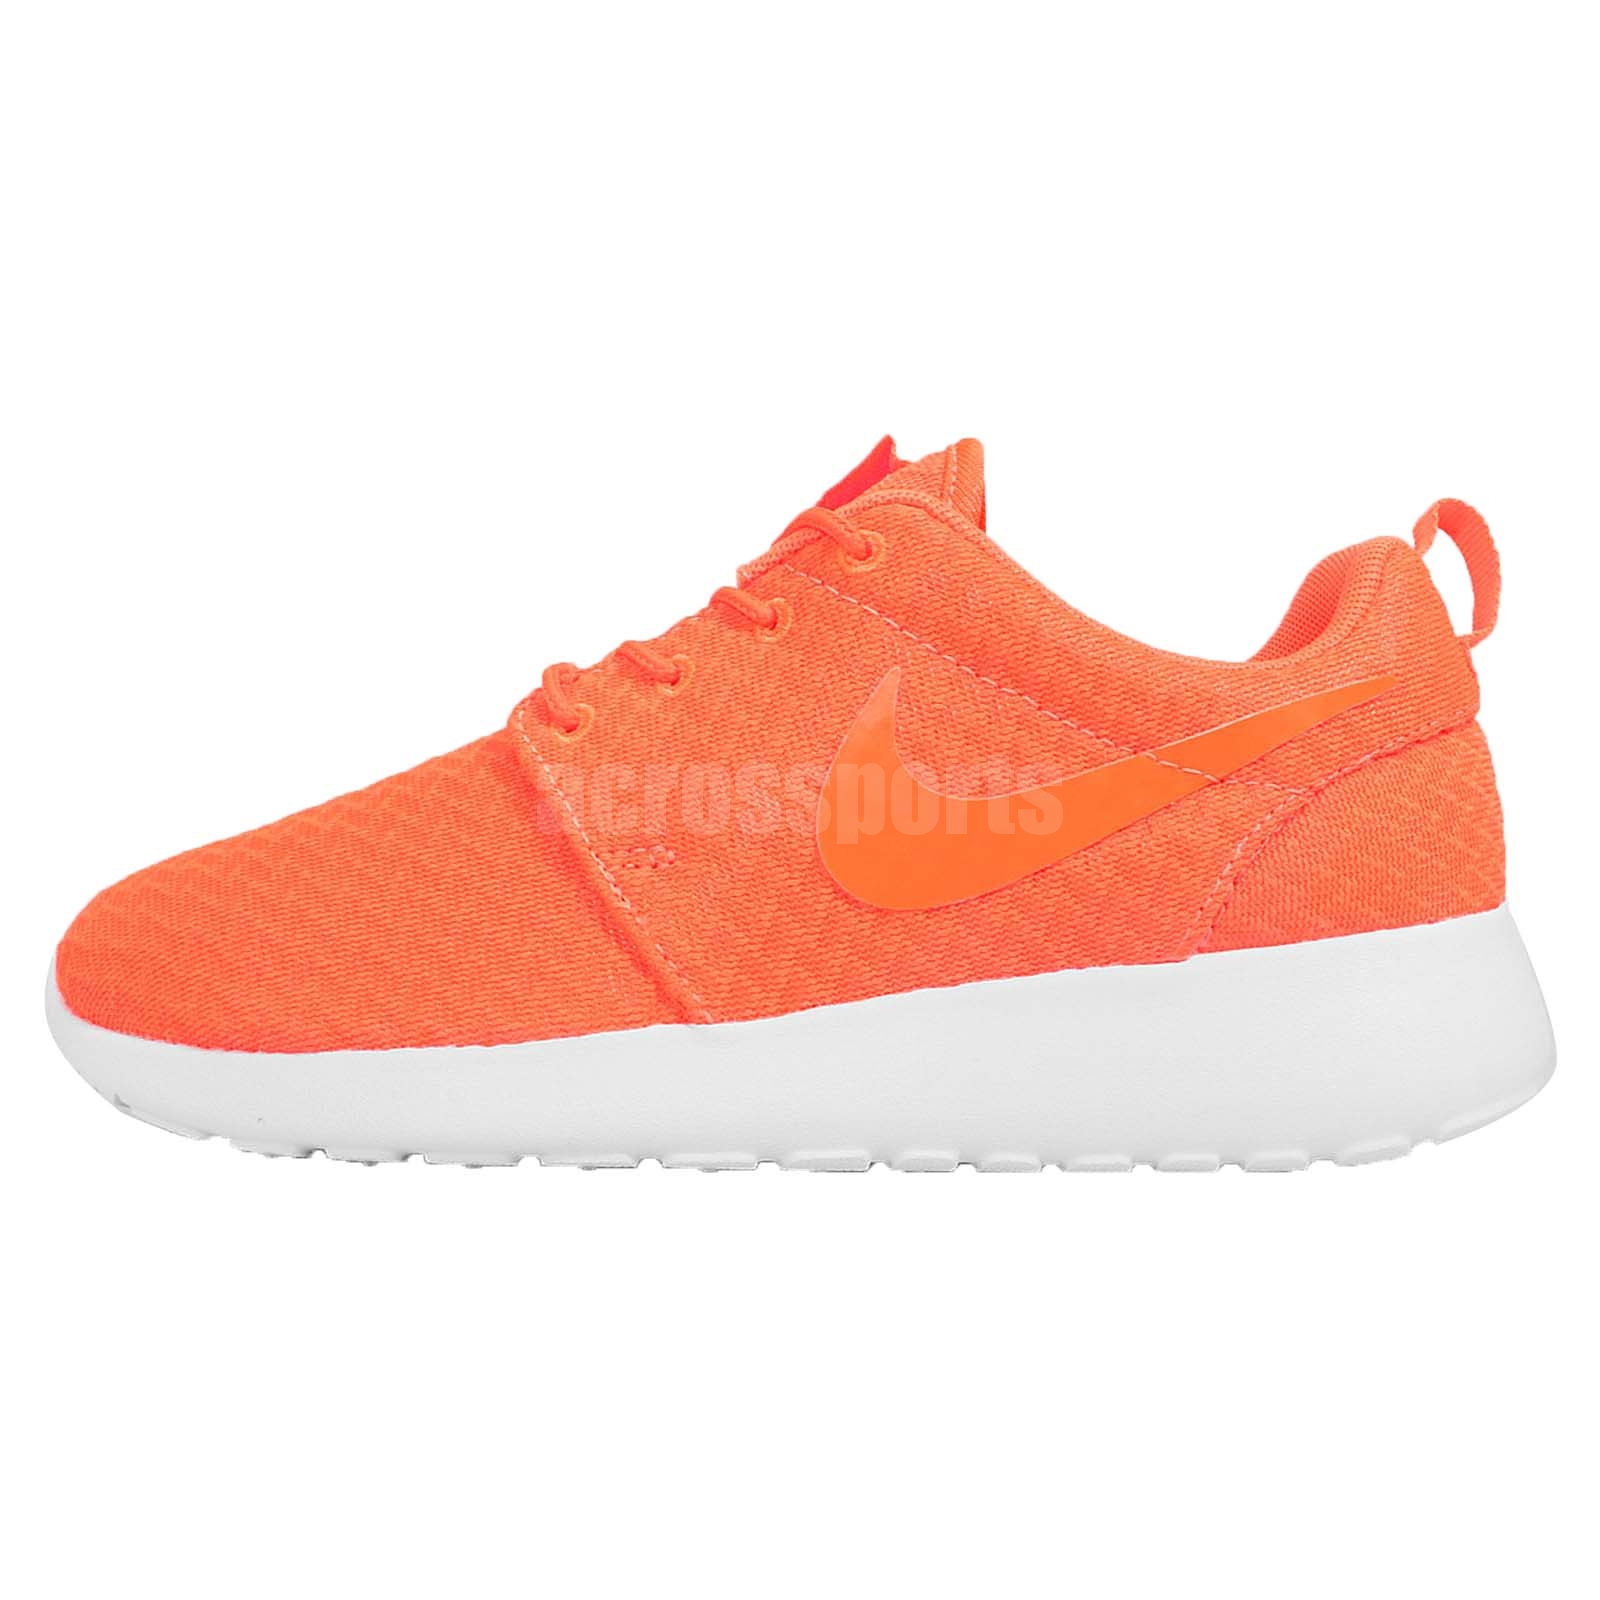 Brilliant Nike Free 5.0+ - Womens Running Shoes - Blue/Orange Online | Sportitude